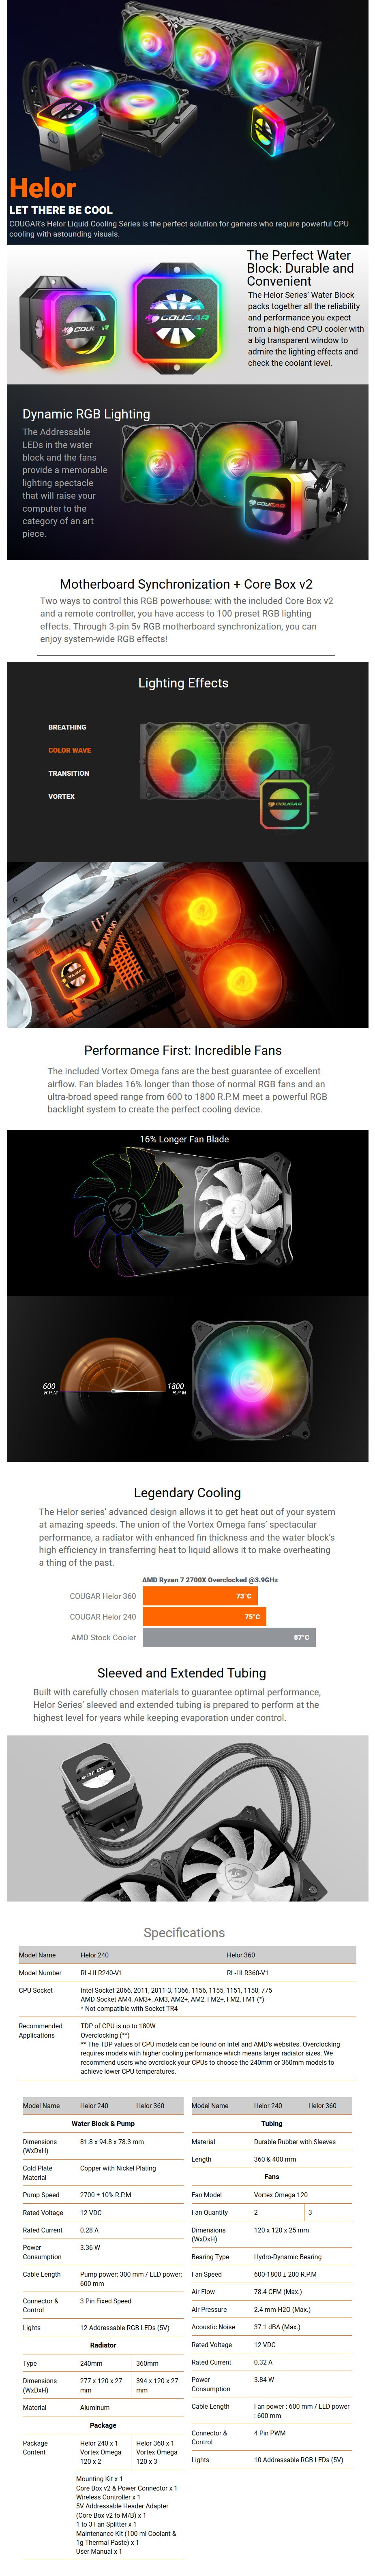 Cougar Helor 360 RGB AIO Liquid CPU Cooler - Desktop Overview 1